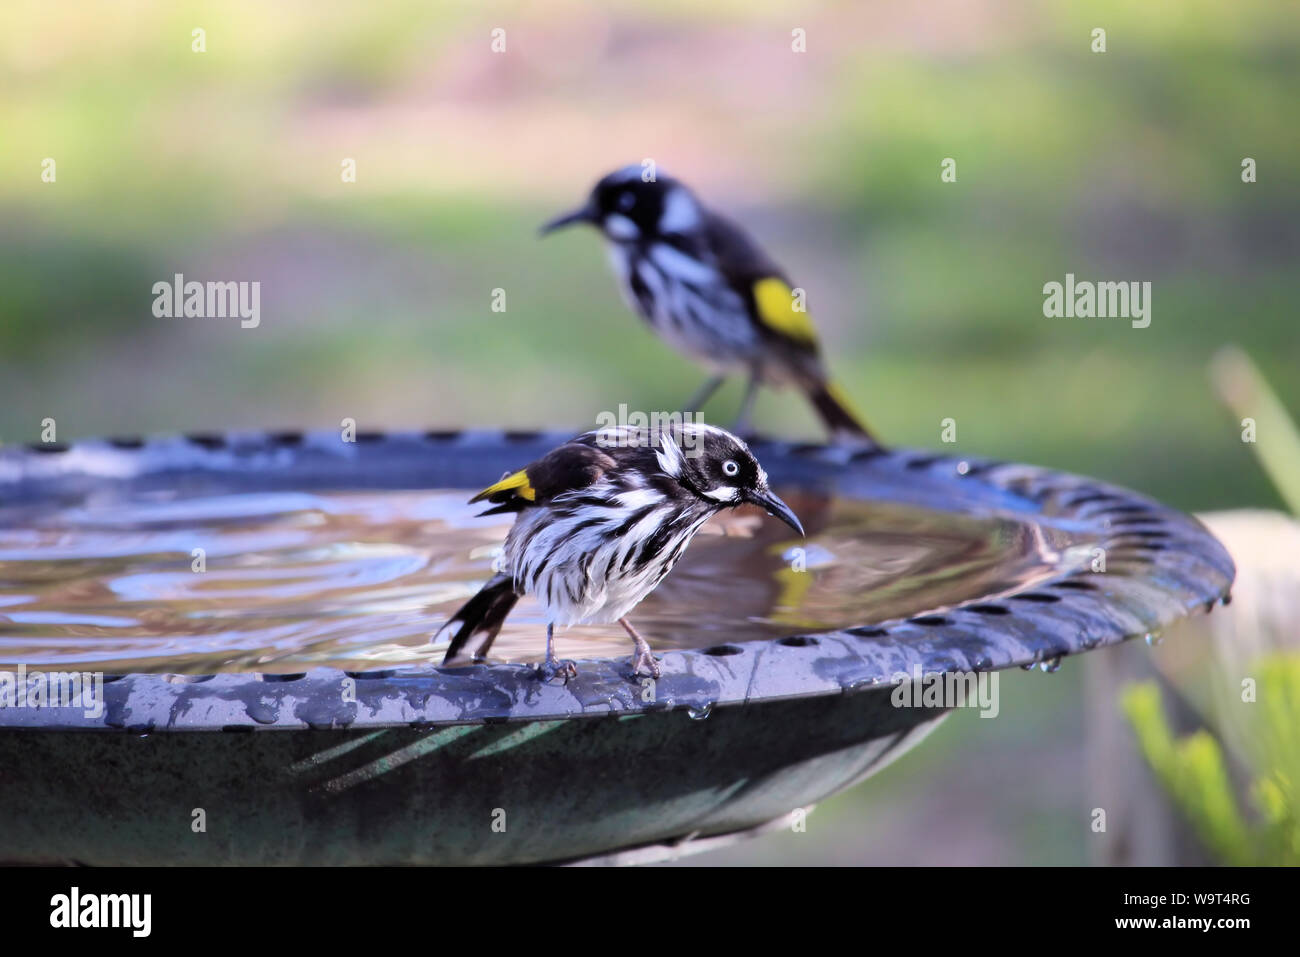 Honeyeater Bird High Resolution Stock Photography And Images Alamy